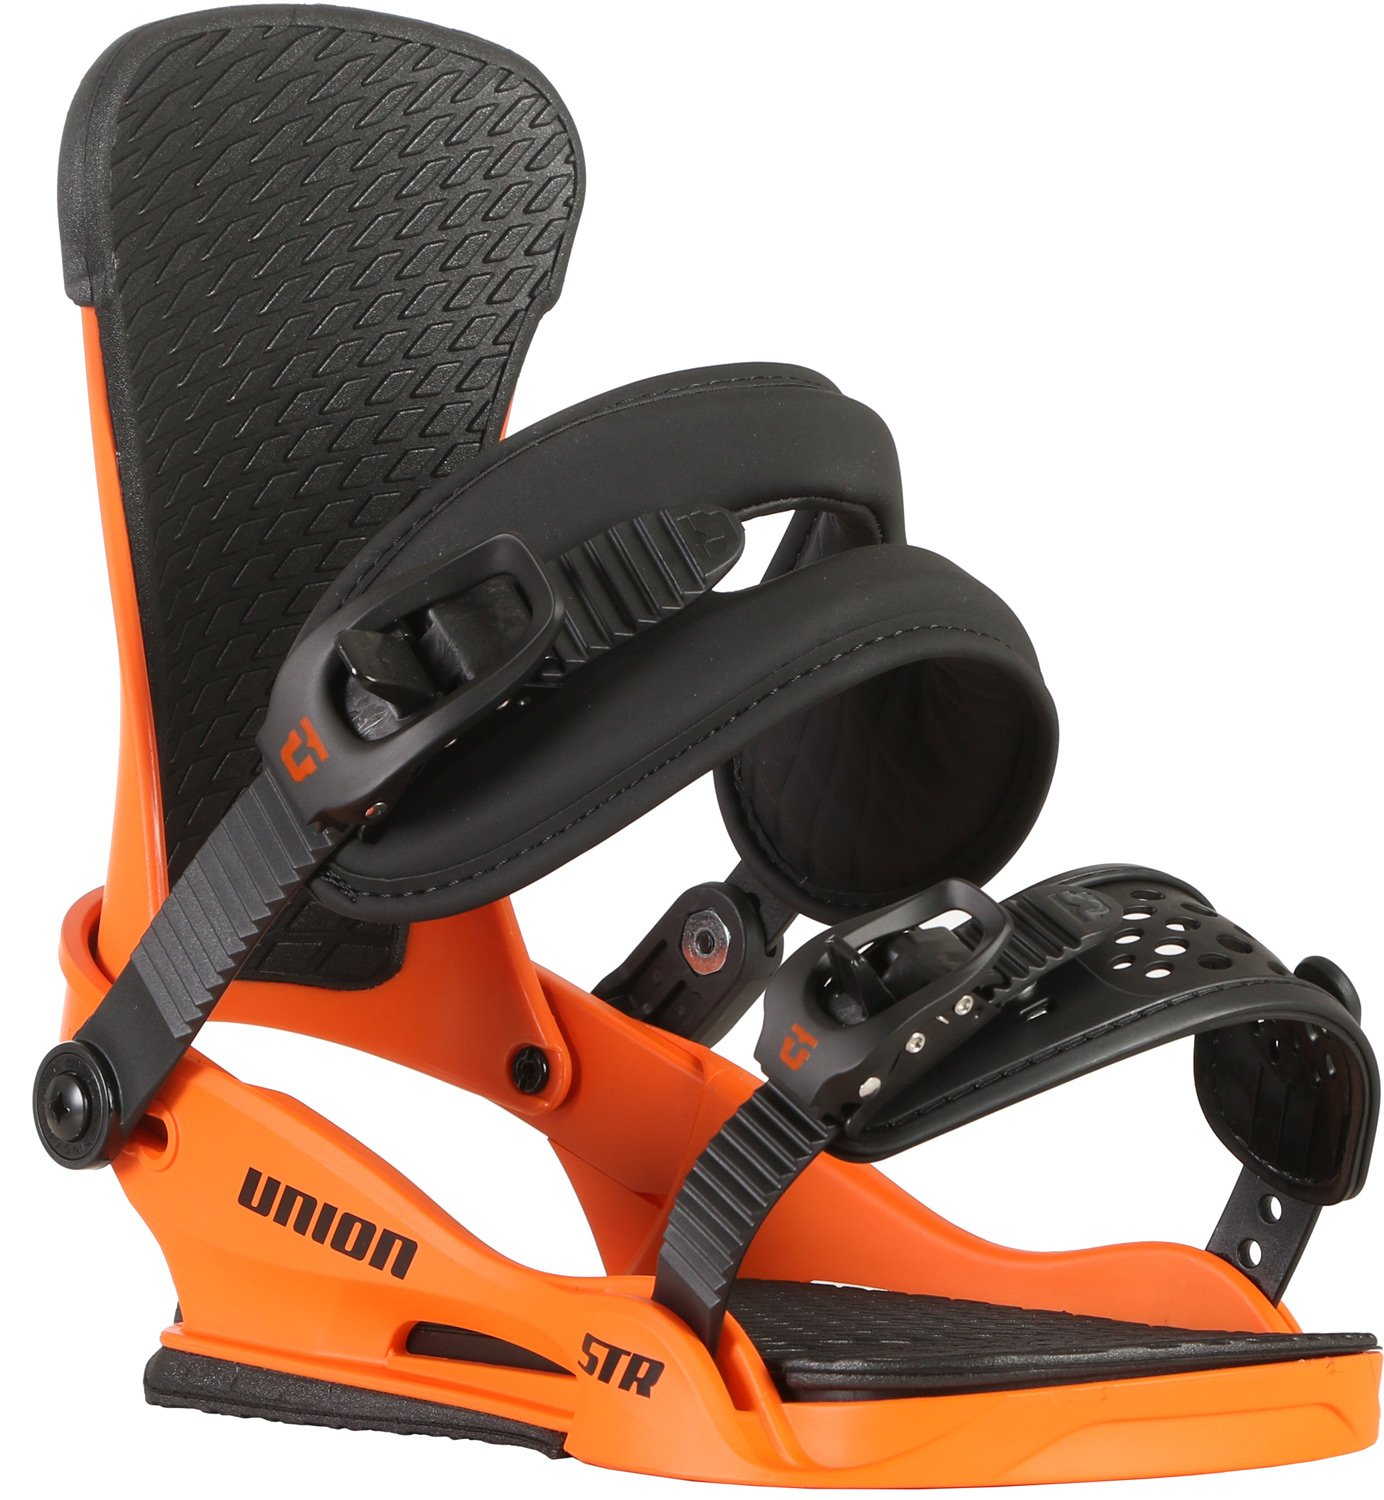 Union Binding Co - Mens STR Bindings 2018, Orange, M by Union Binding